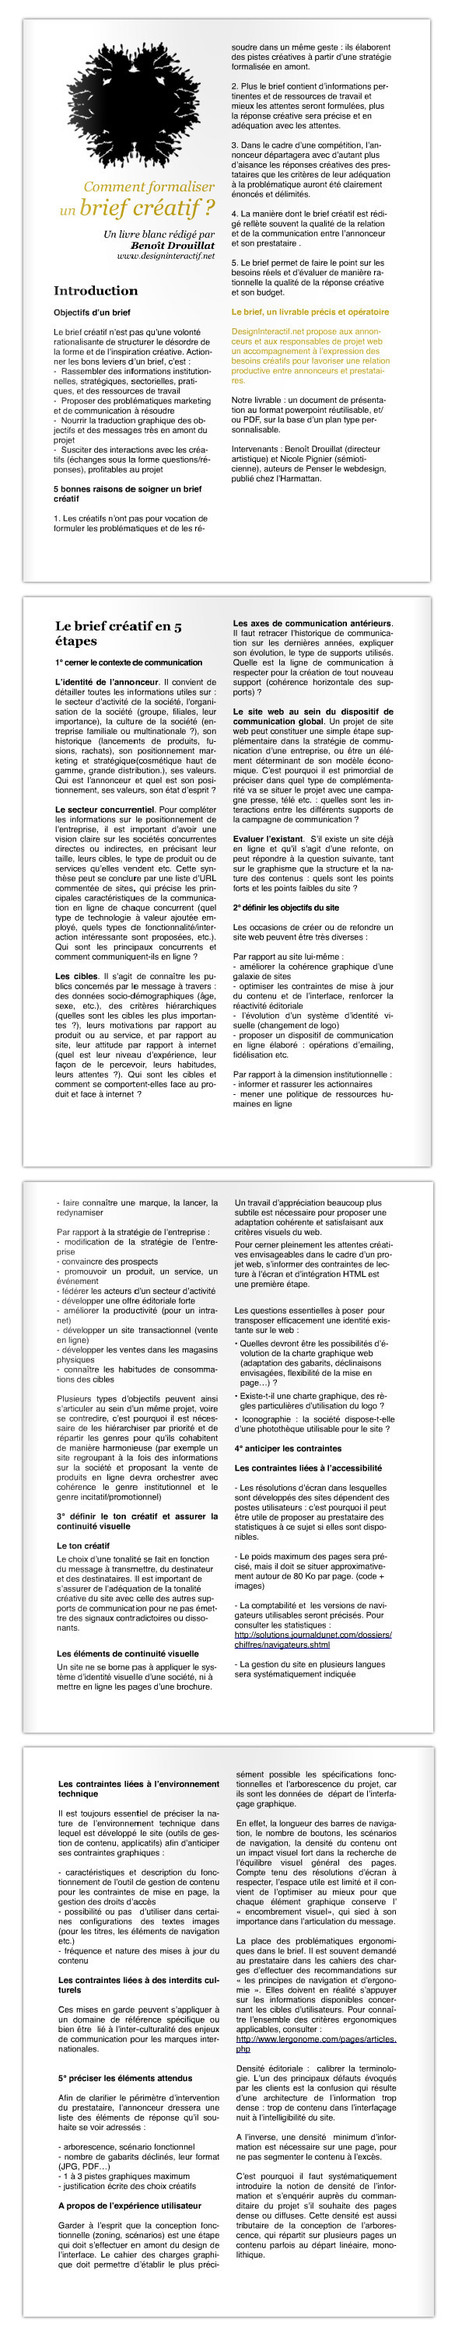 Comment Formaliser Un Brief Créatif — [Naro] Minded | formation 2.0 | Scoop.it